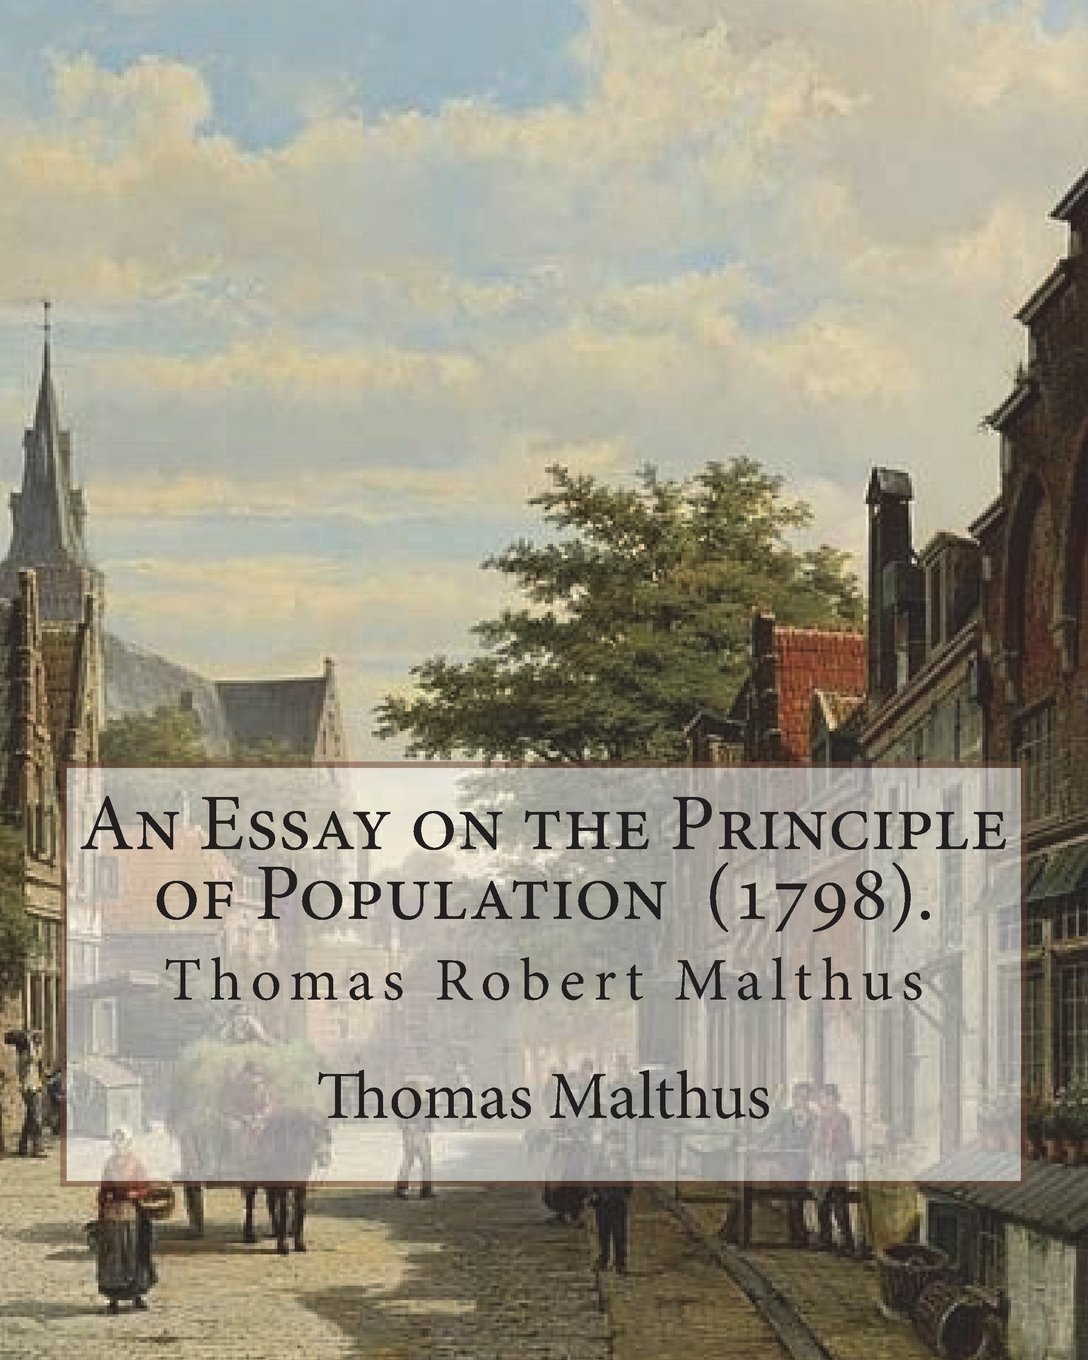 015 71giypnbhsl An Essay On The Principle Of Population Fascinating By Thomas Malthus Pdf In Concluded Which Following Full